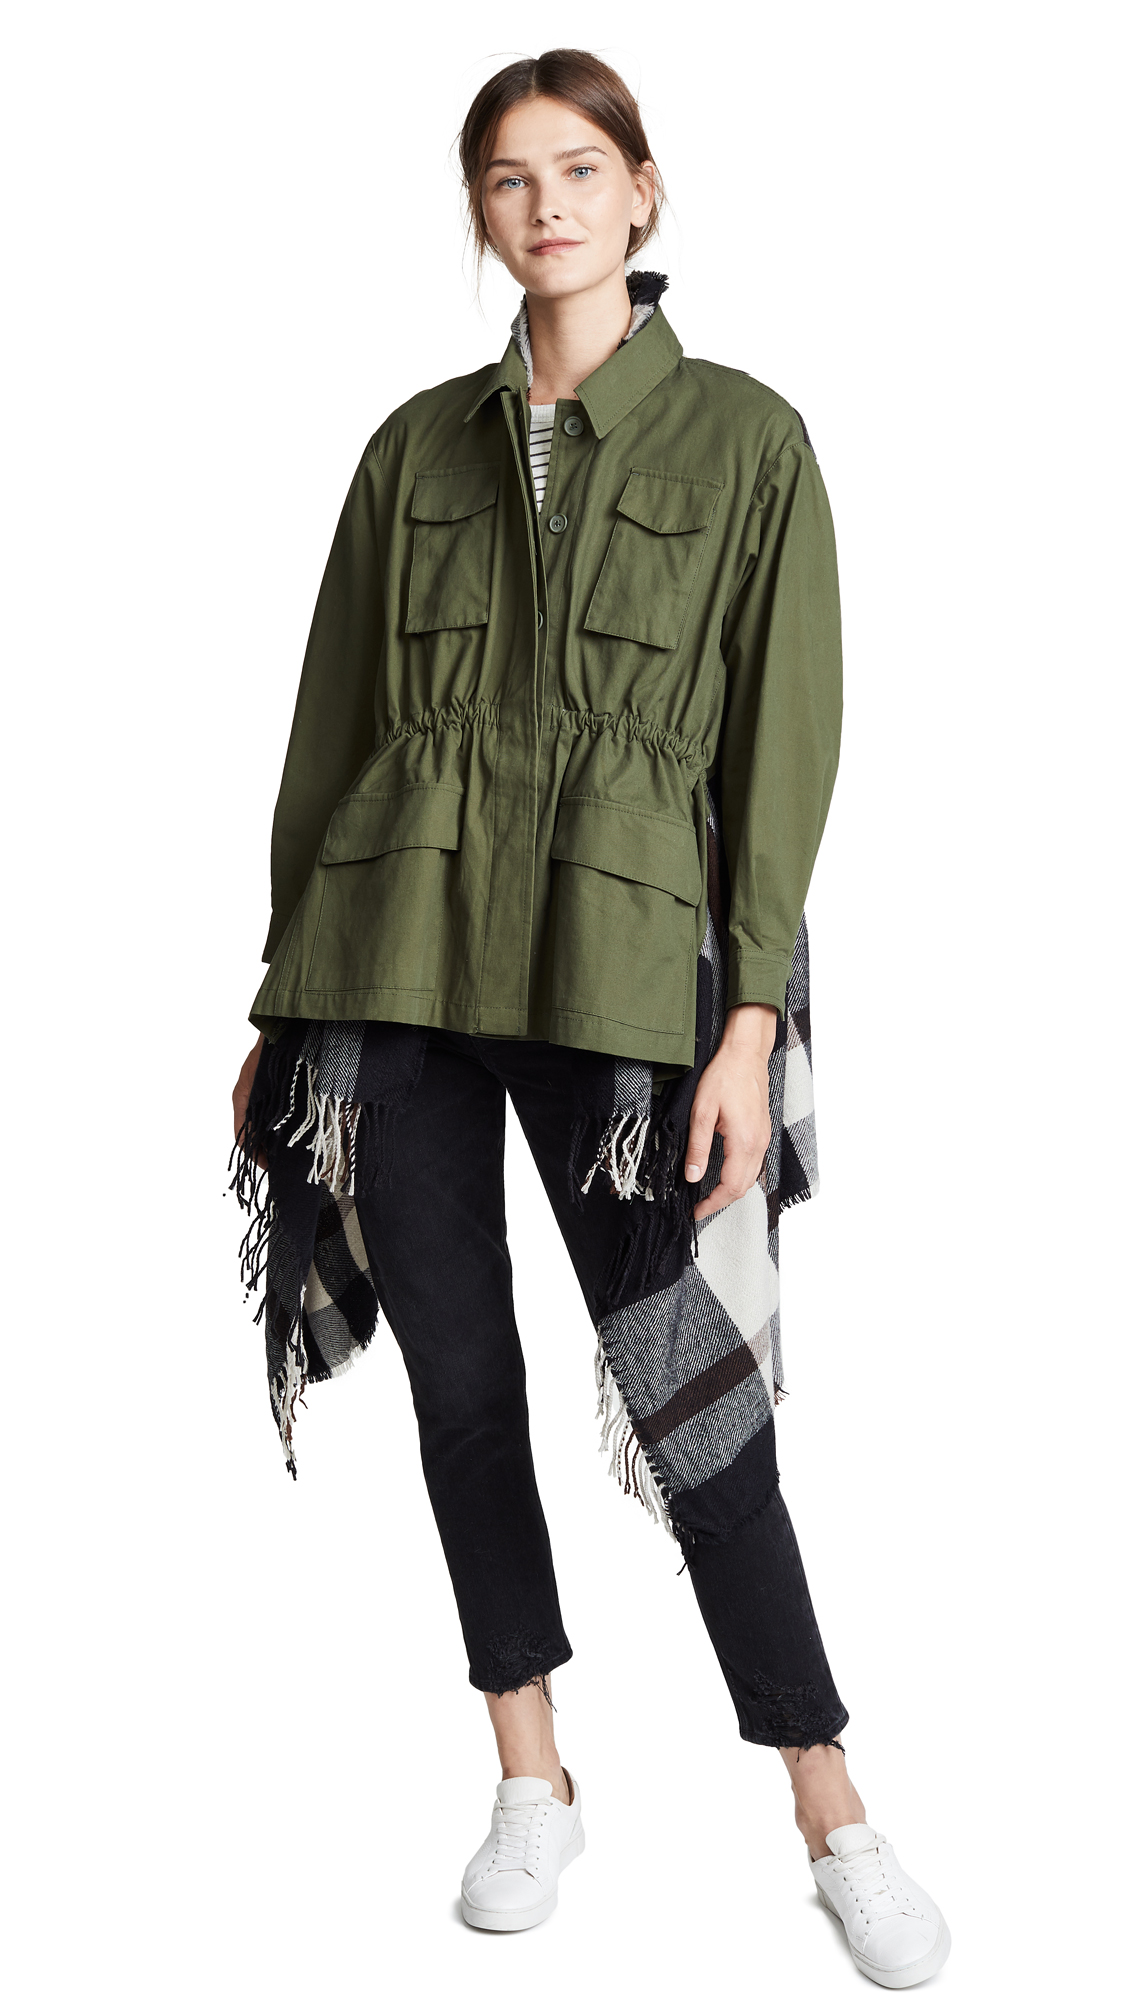 BB Dakota Breakfast Army Jacket In Army Green